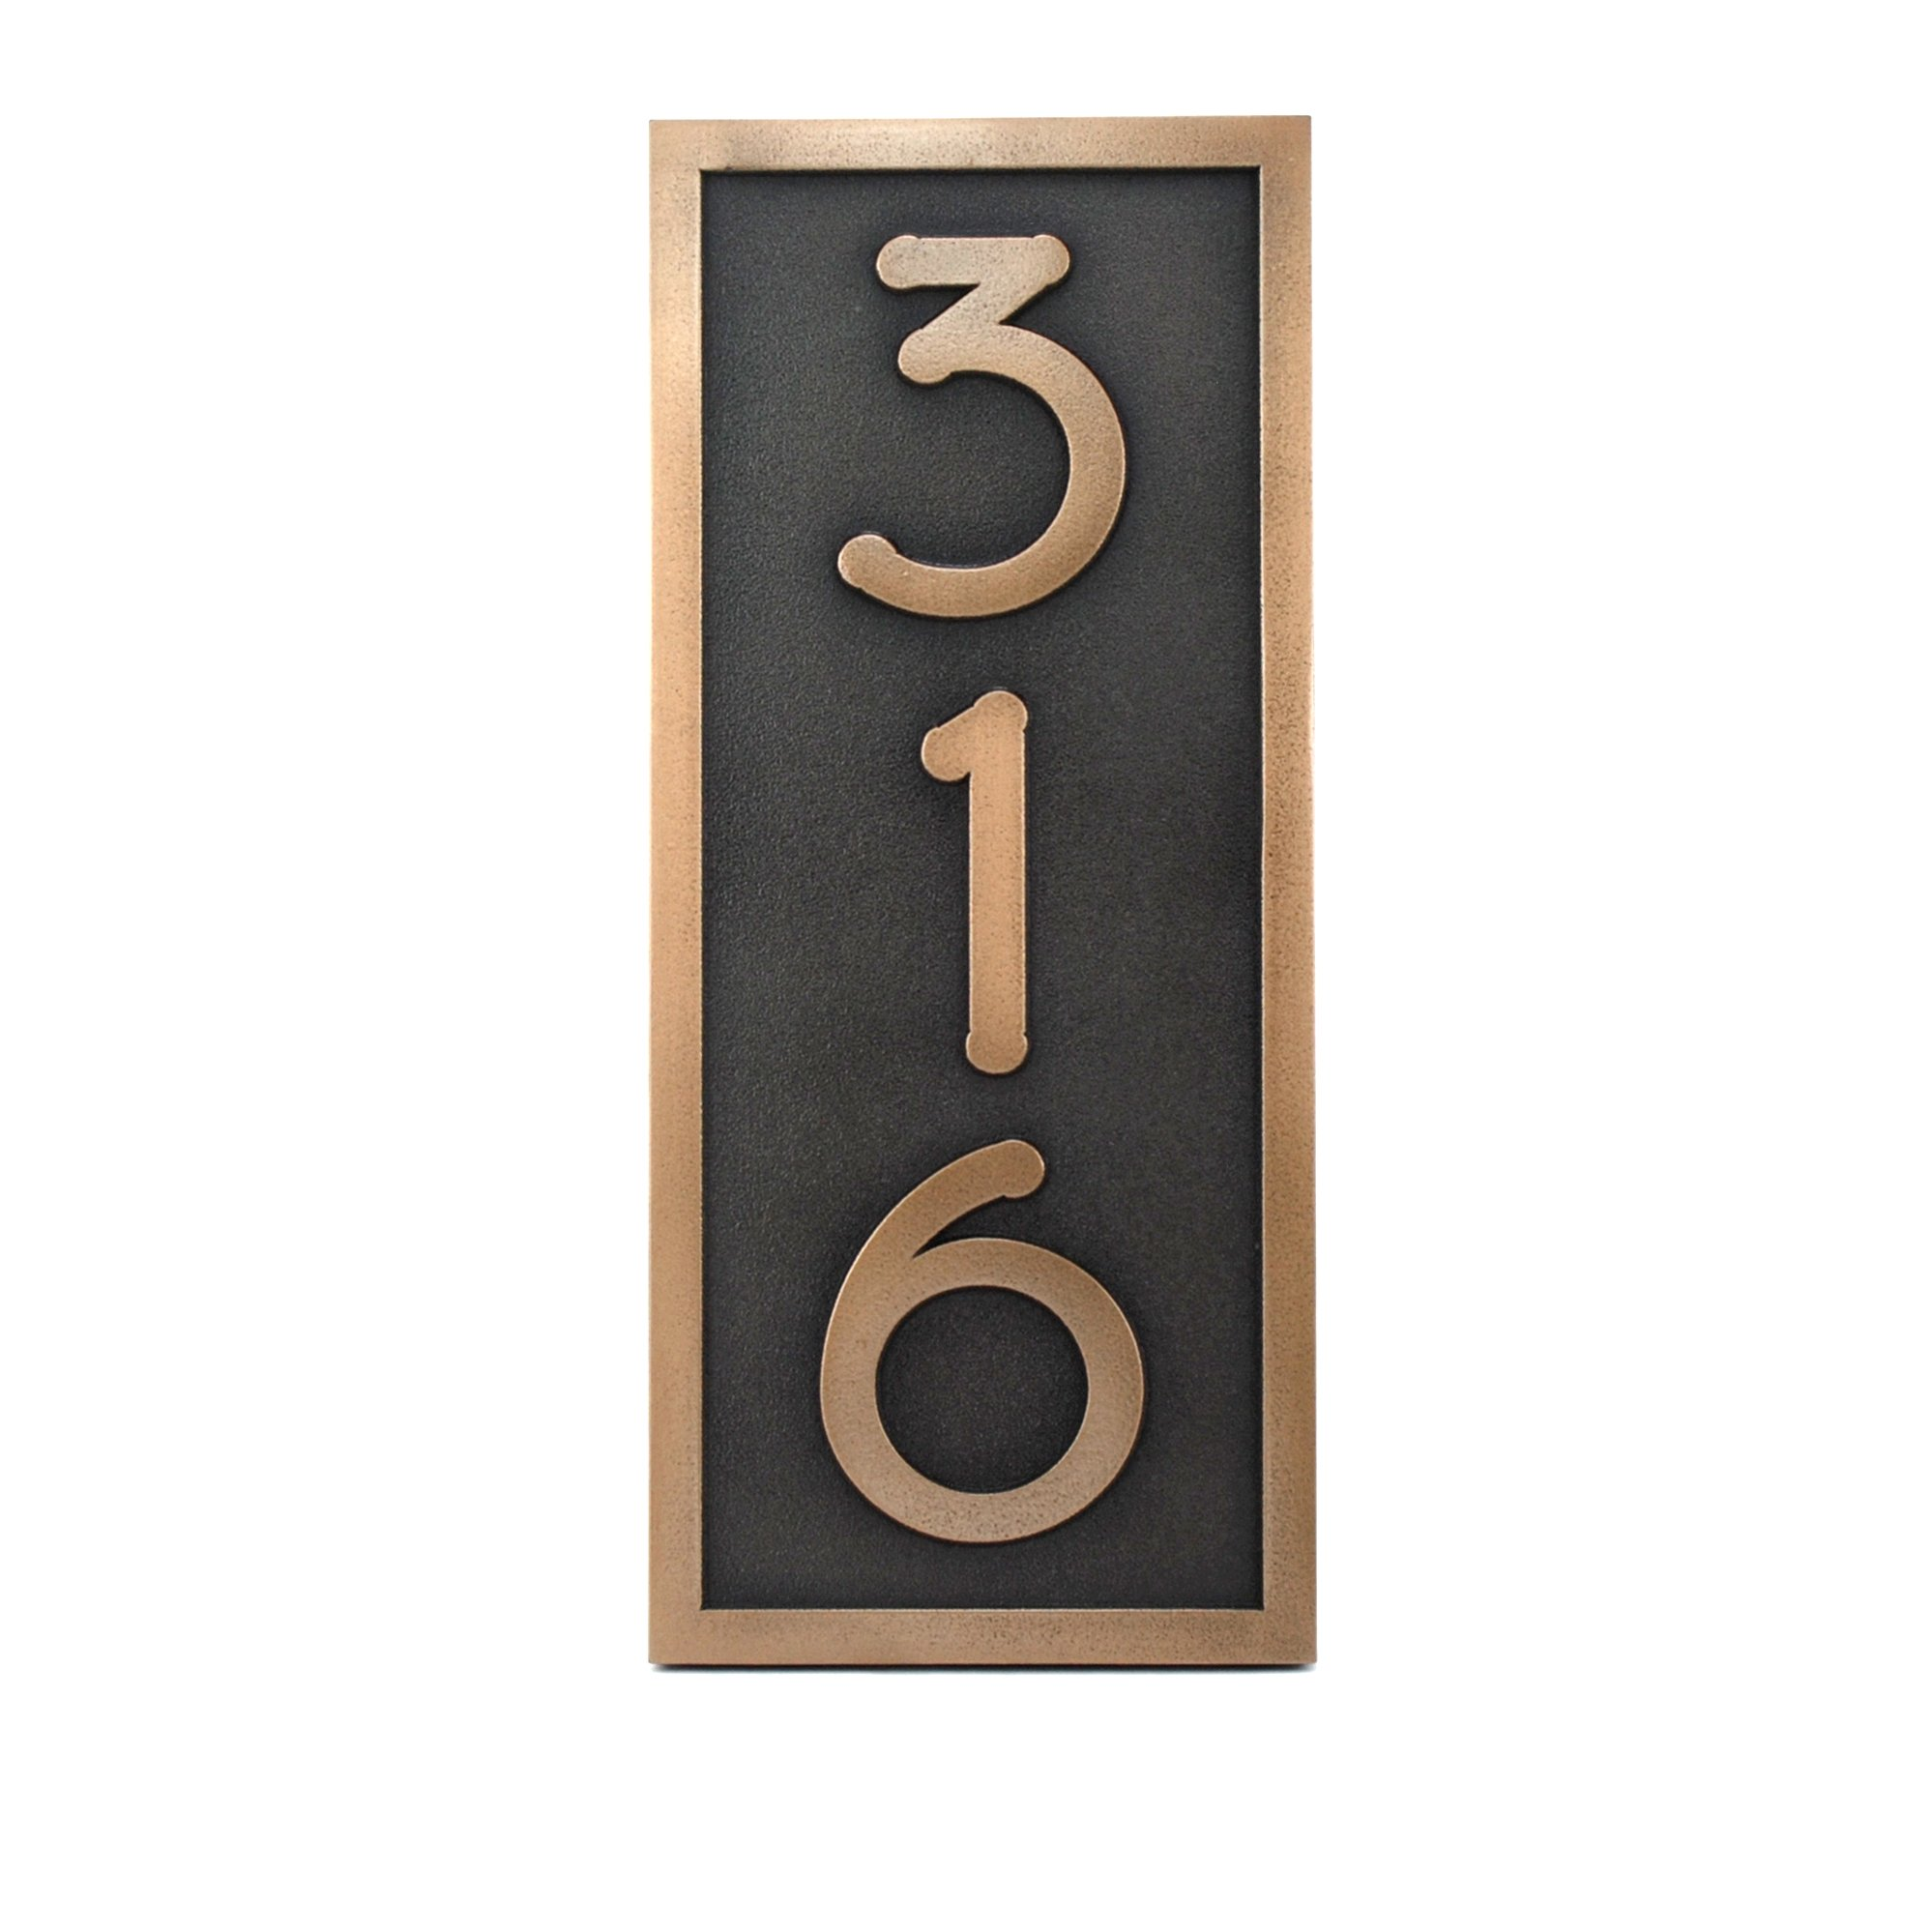 Frank Lloyd Vertical Customized Home Numbers 3 Number 6.5x15 - Raised Bronze Metal Coated